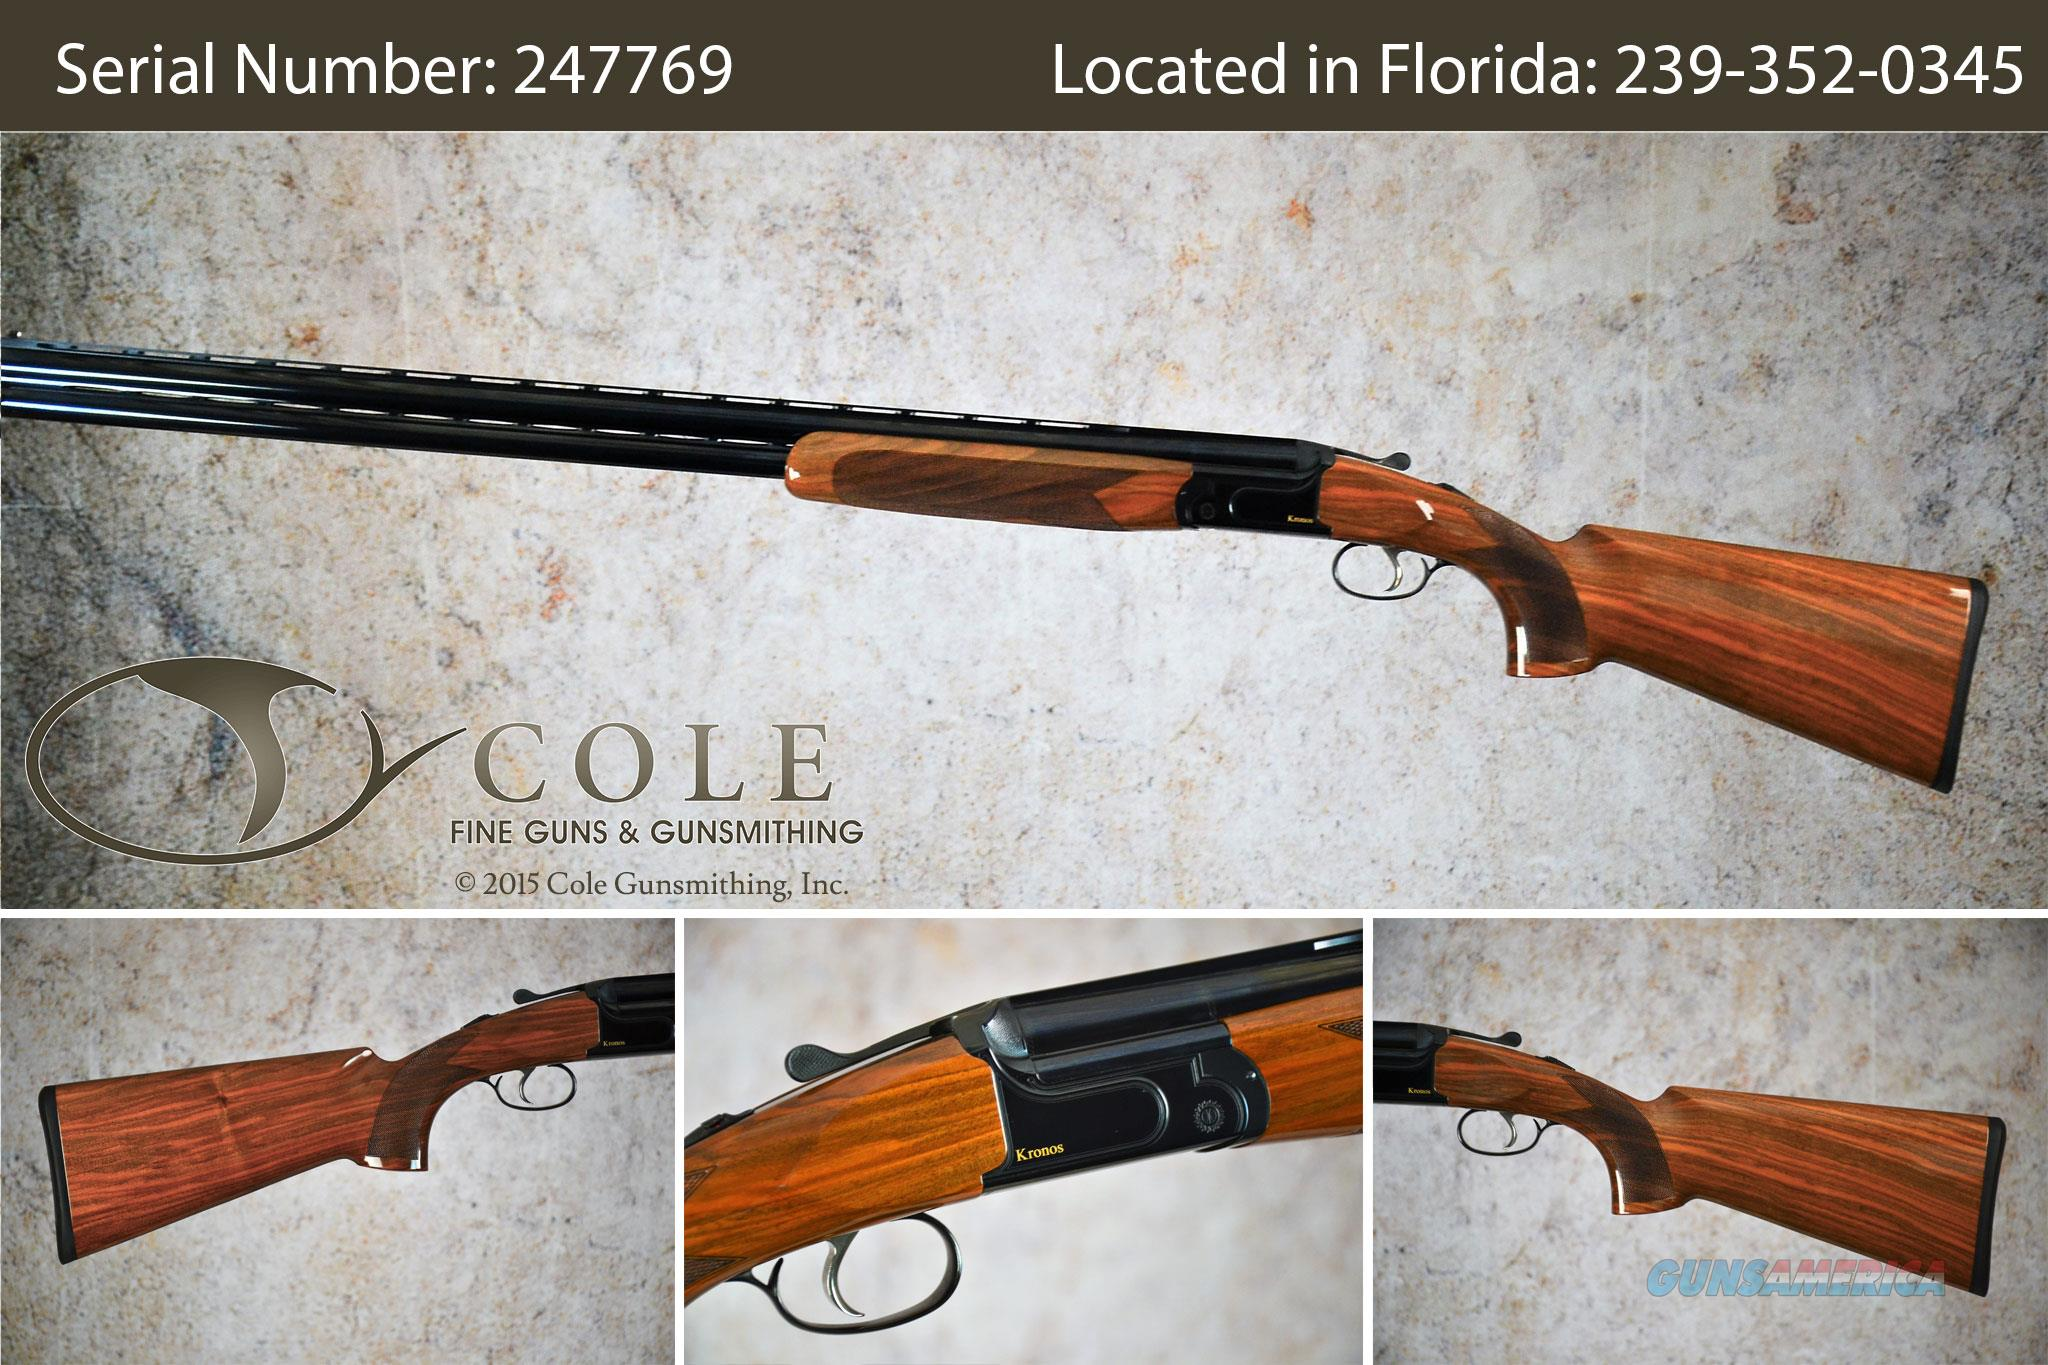 "Zoli Kronos 12ga 32"" Sporting SN:247769~~Unfired Demo~~  Guns > Shotguns > Antonio Zoli Shotguns"